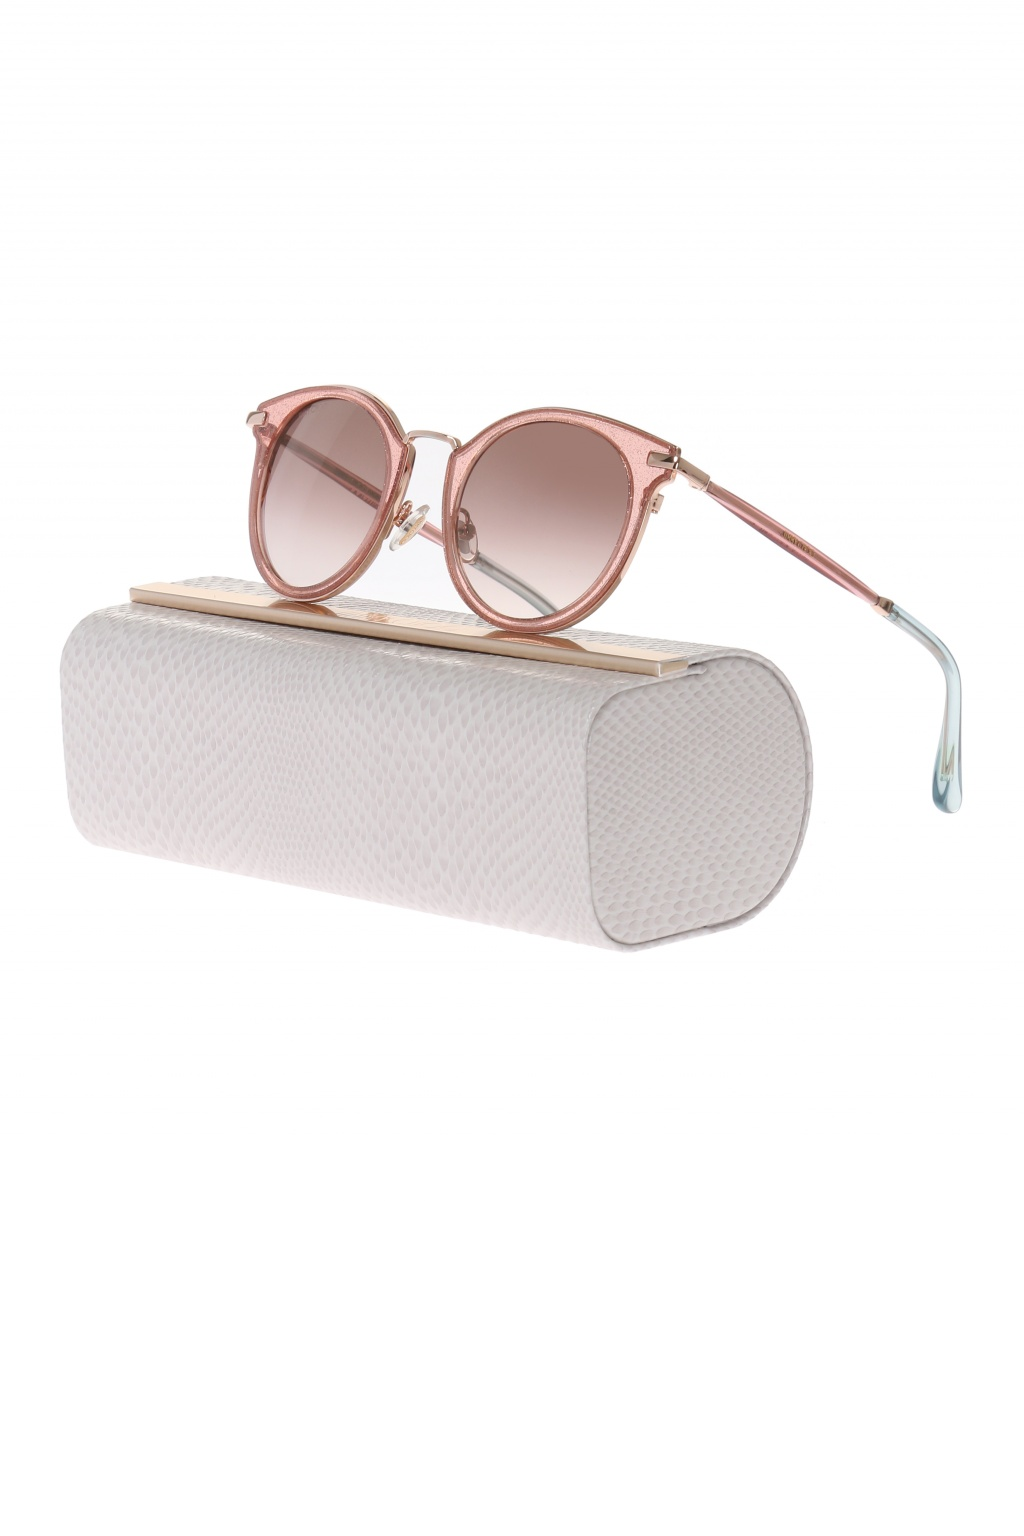 Jimmy Choo 'Raffy' sunglasses